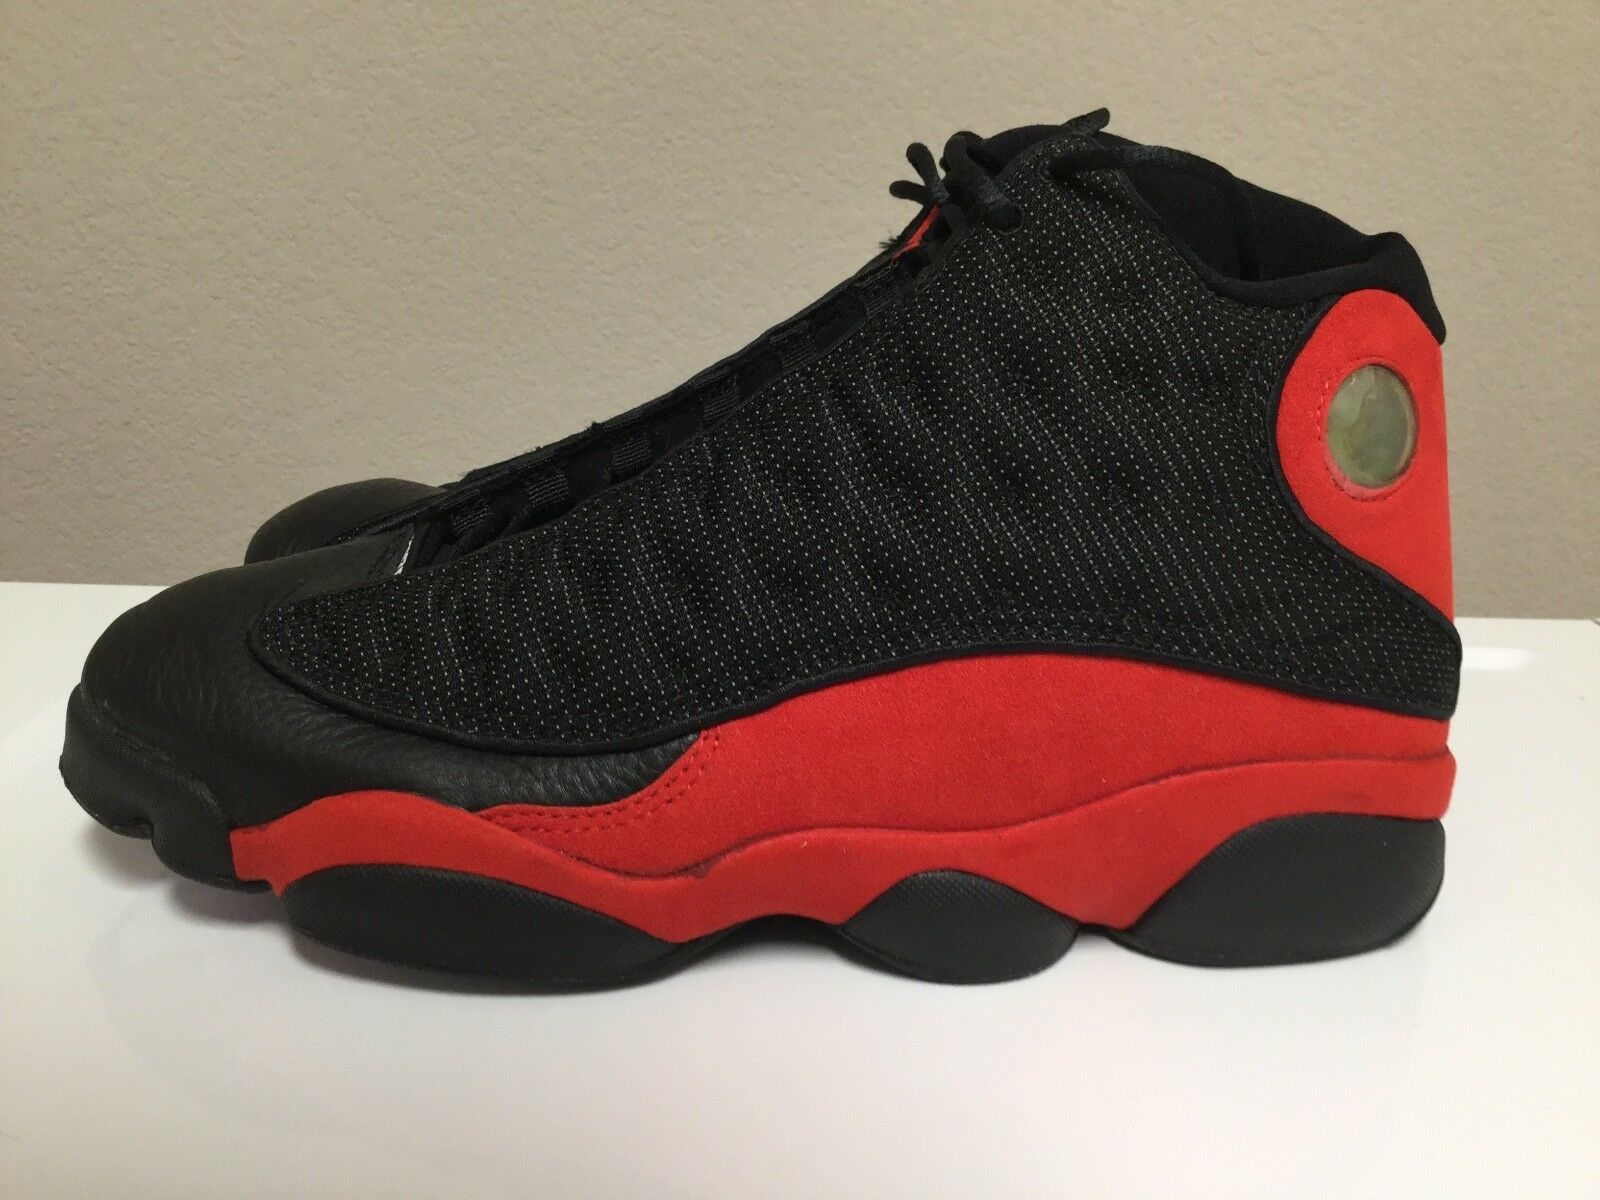 1997 Original OG Nike Air Jordan 13 XIII Size 12, Black True Red, New w Box